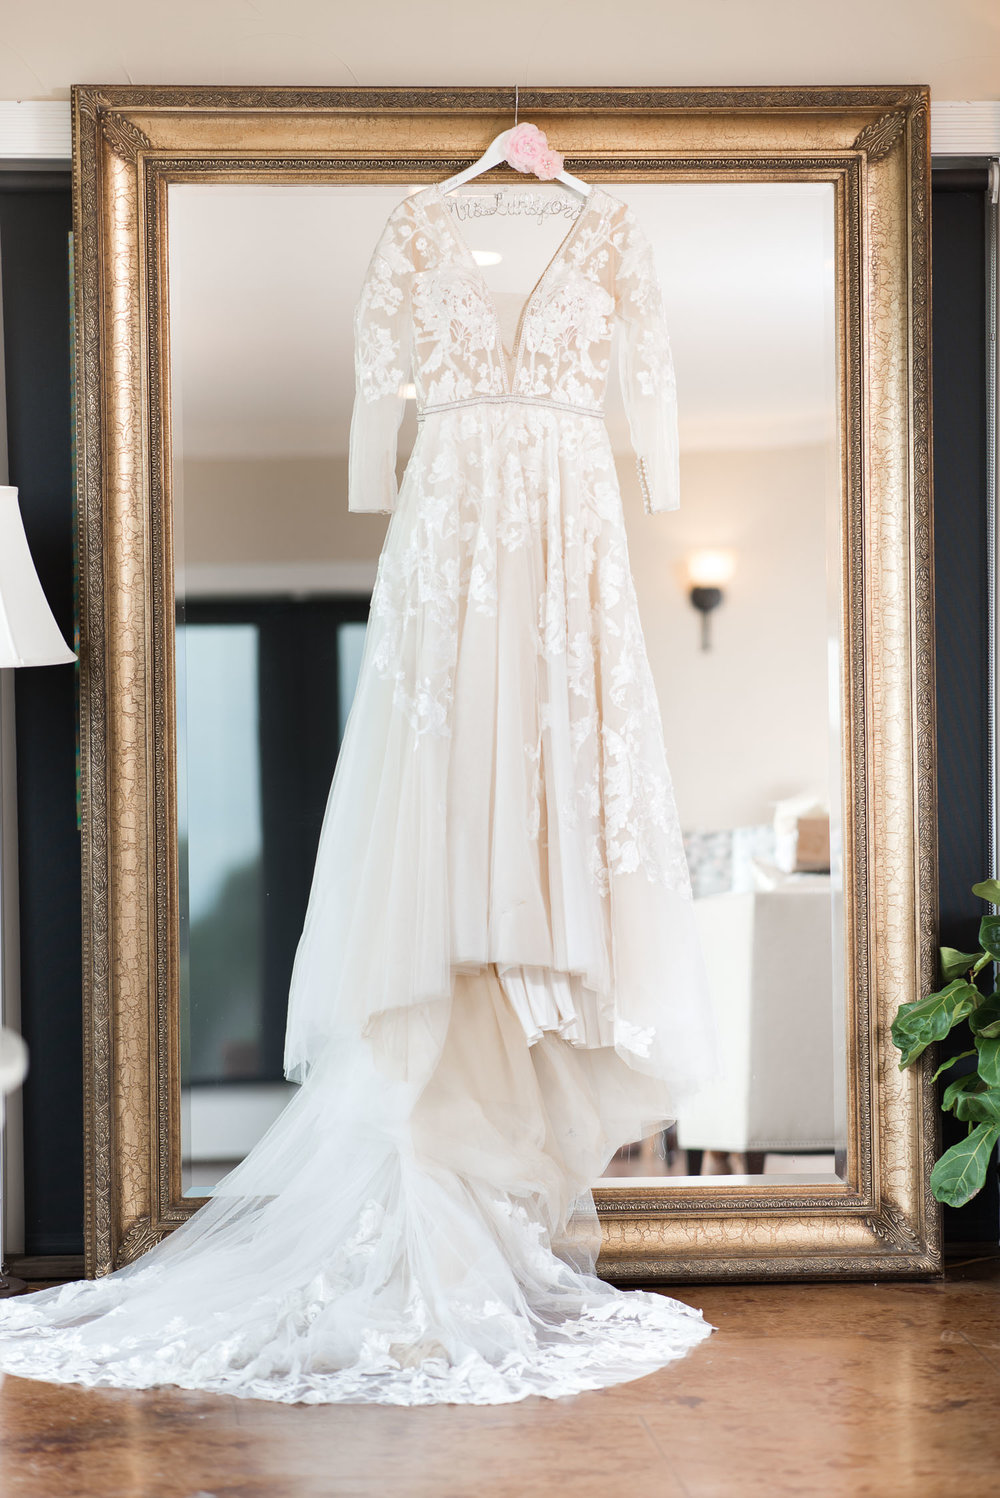 1 Wedding Dress hanging on vintage mirror.jpg